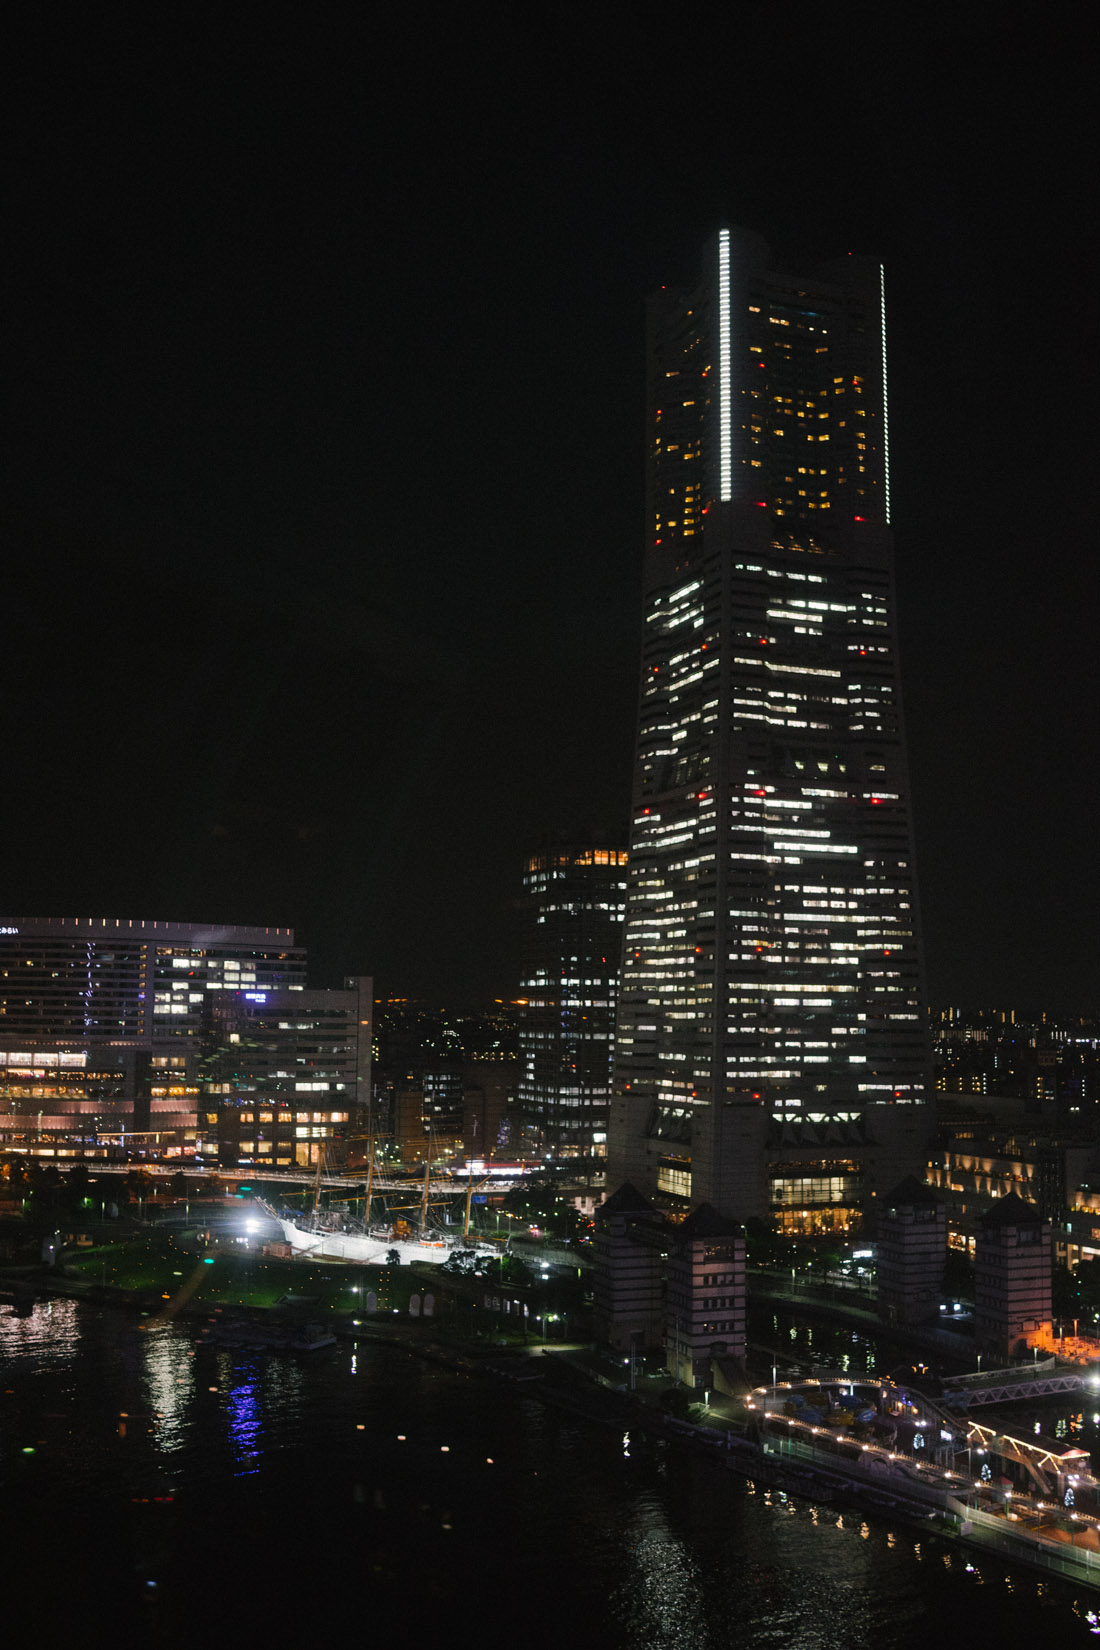 The Landmark Tower stands 296 meters tall and has more than 70 floors.